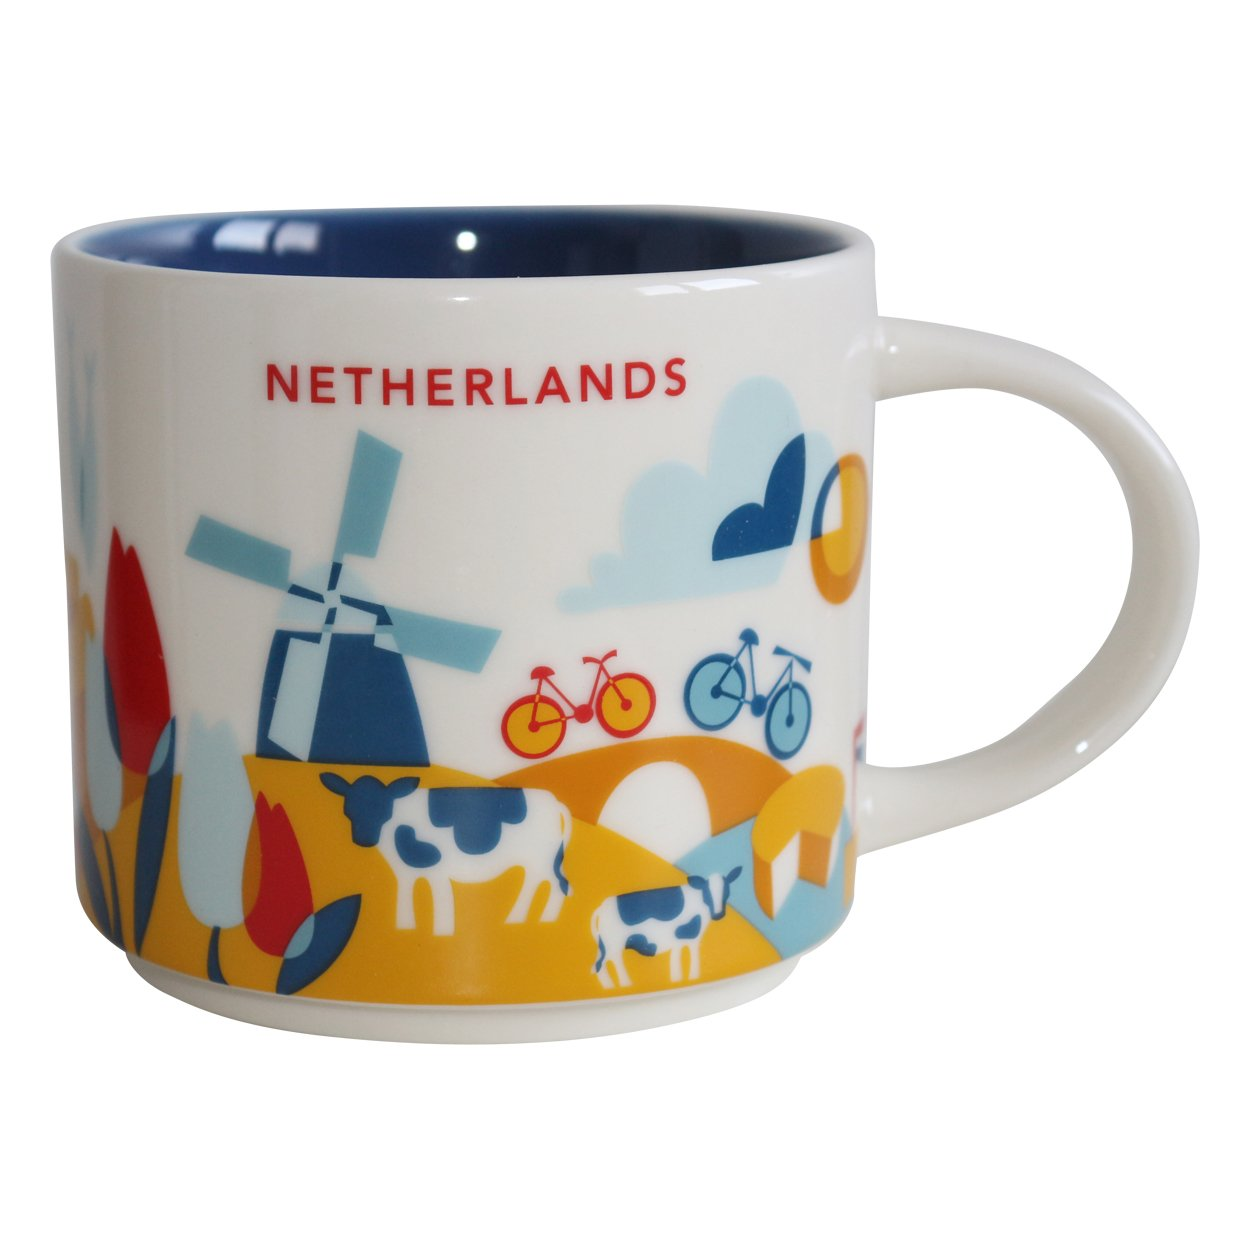 S&B Starbucks City Mug You Are Here Collection Netherlands Coffee Cup 14 oz